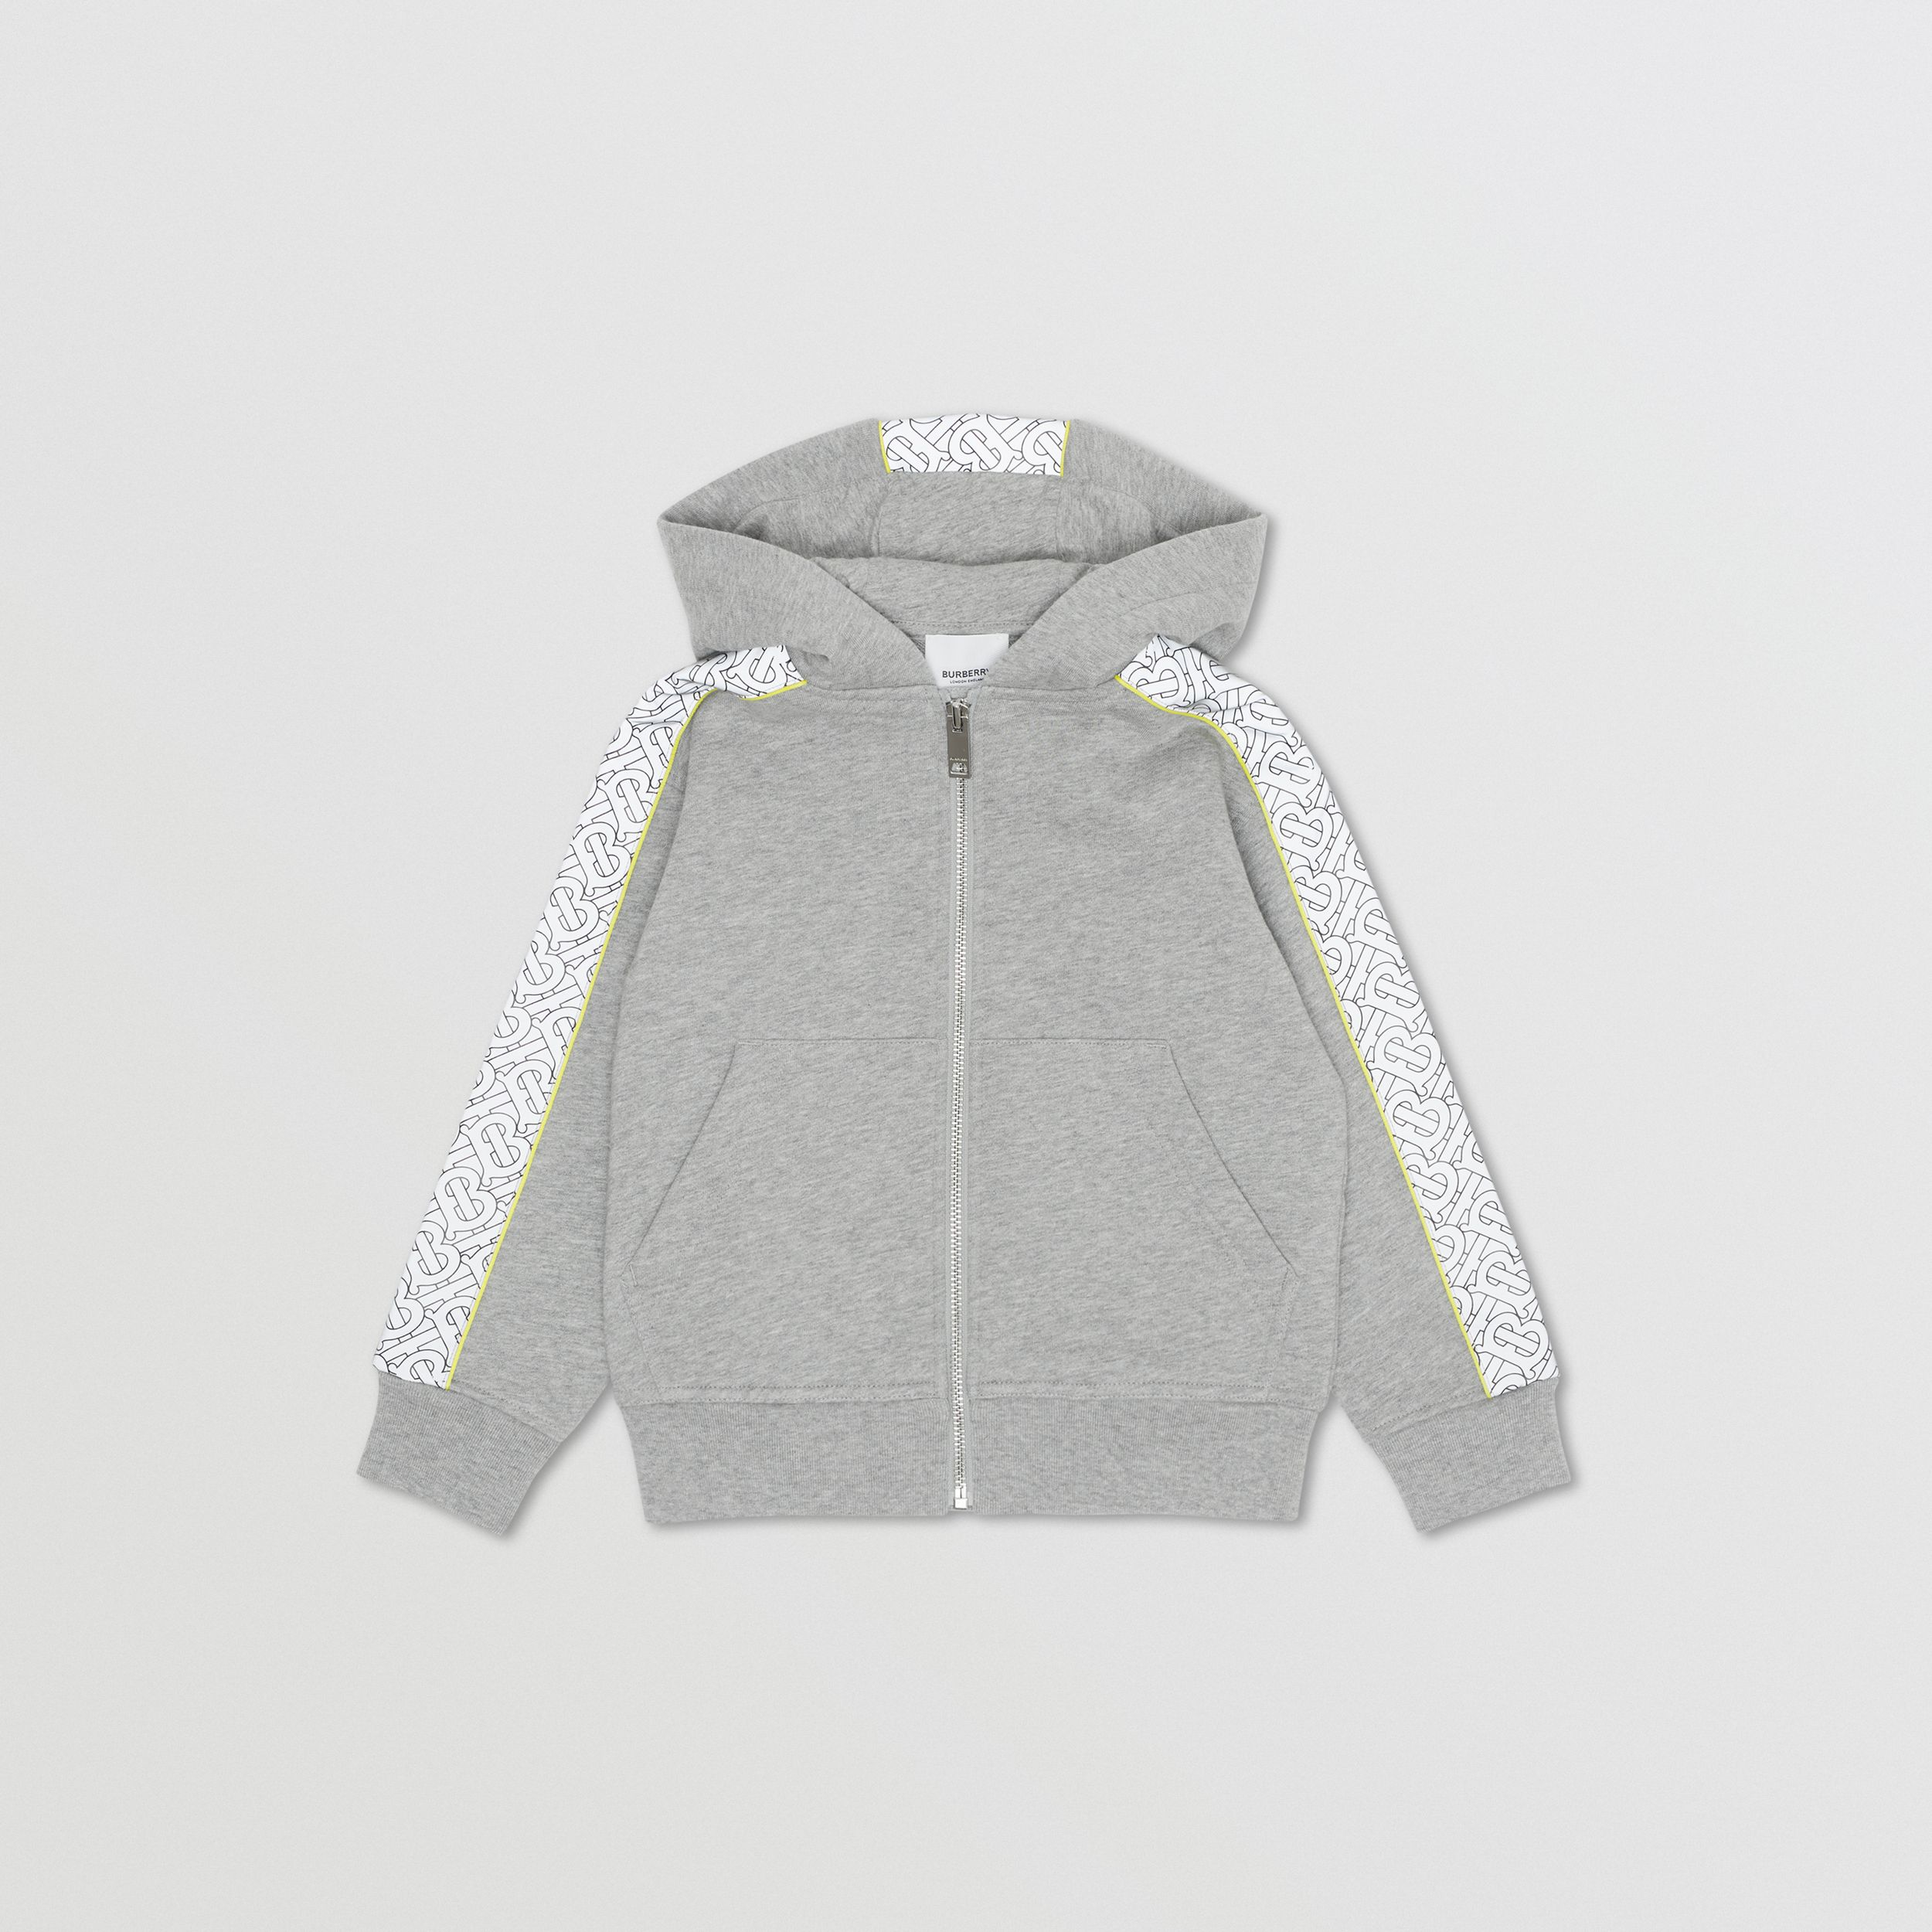 Monogram Print Panel Cotton Hooded Top in Grey Melange | Burberry - 1